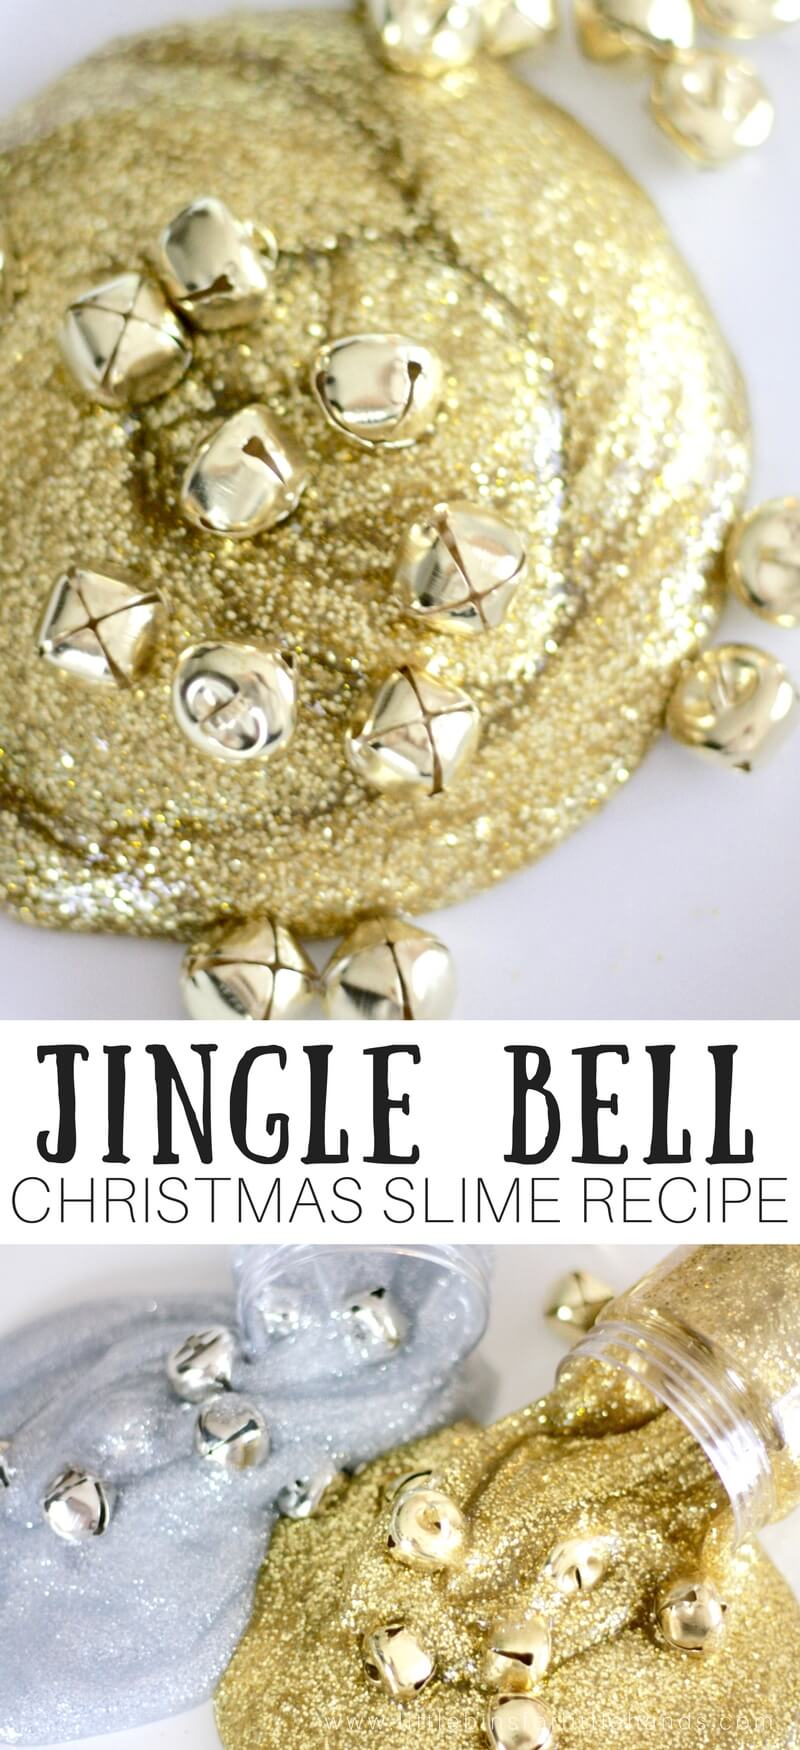 When I think of jingle bells, I always end up with the Christmas song stuck in my head. I found a few packages of these gold and silver bells at the local dollar store the other day, and I was instantly inspired. What was I inspired to do? Make slime of course and of course a festive jingle bell Christmas slime recipe was exactly what I needed. Sparkling gold and silver slime filled with bells is an awesome holiday activity.